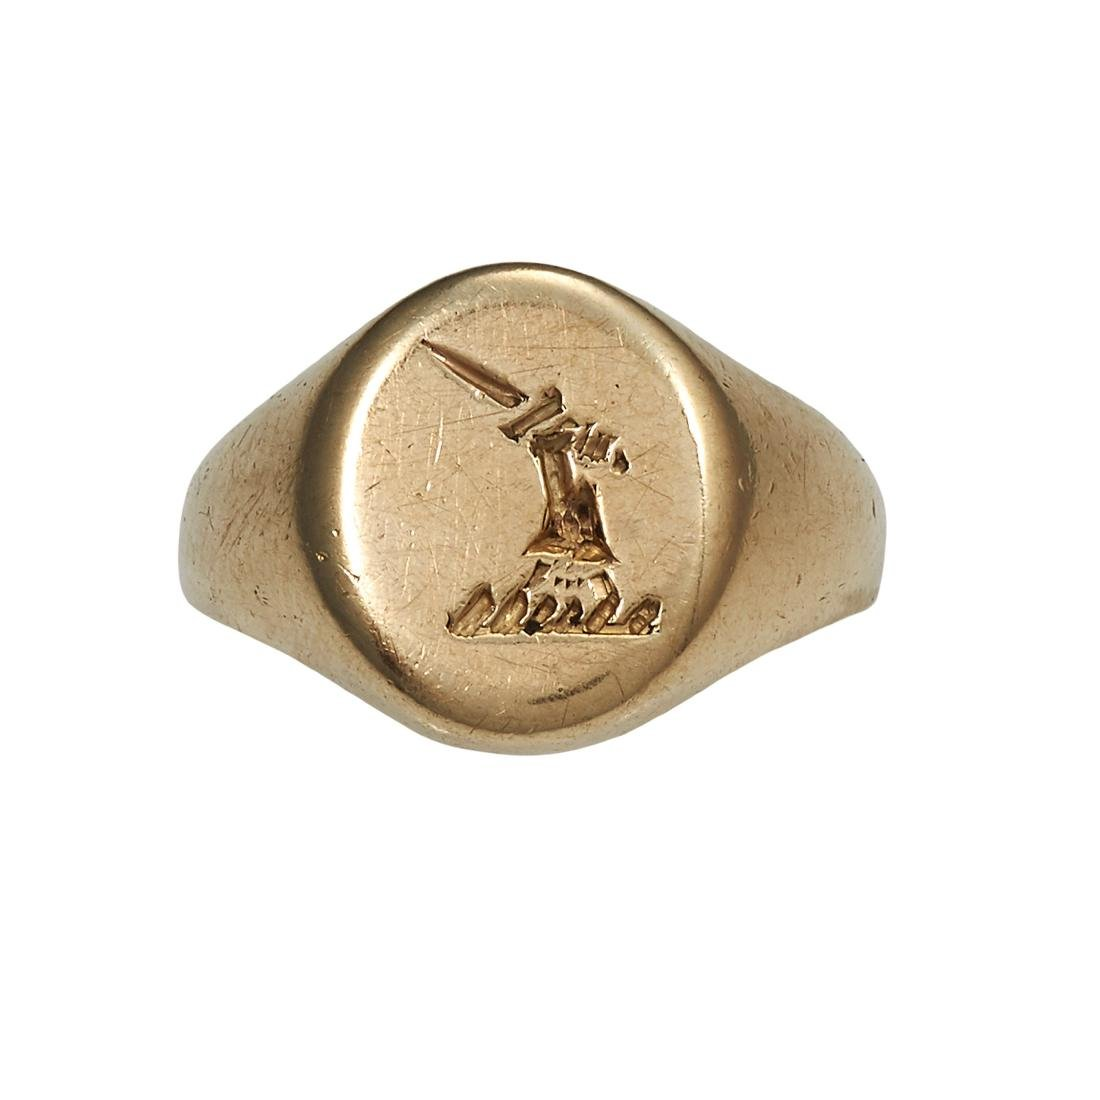 AN ANTIQUE INTAGLIO SIGNET RING in yellow gold, the